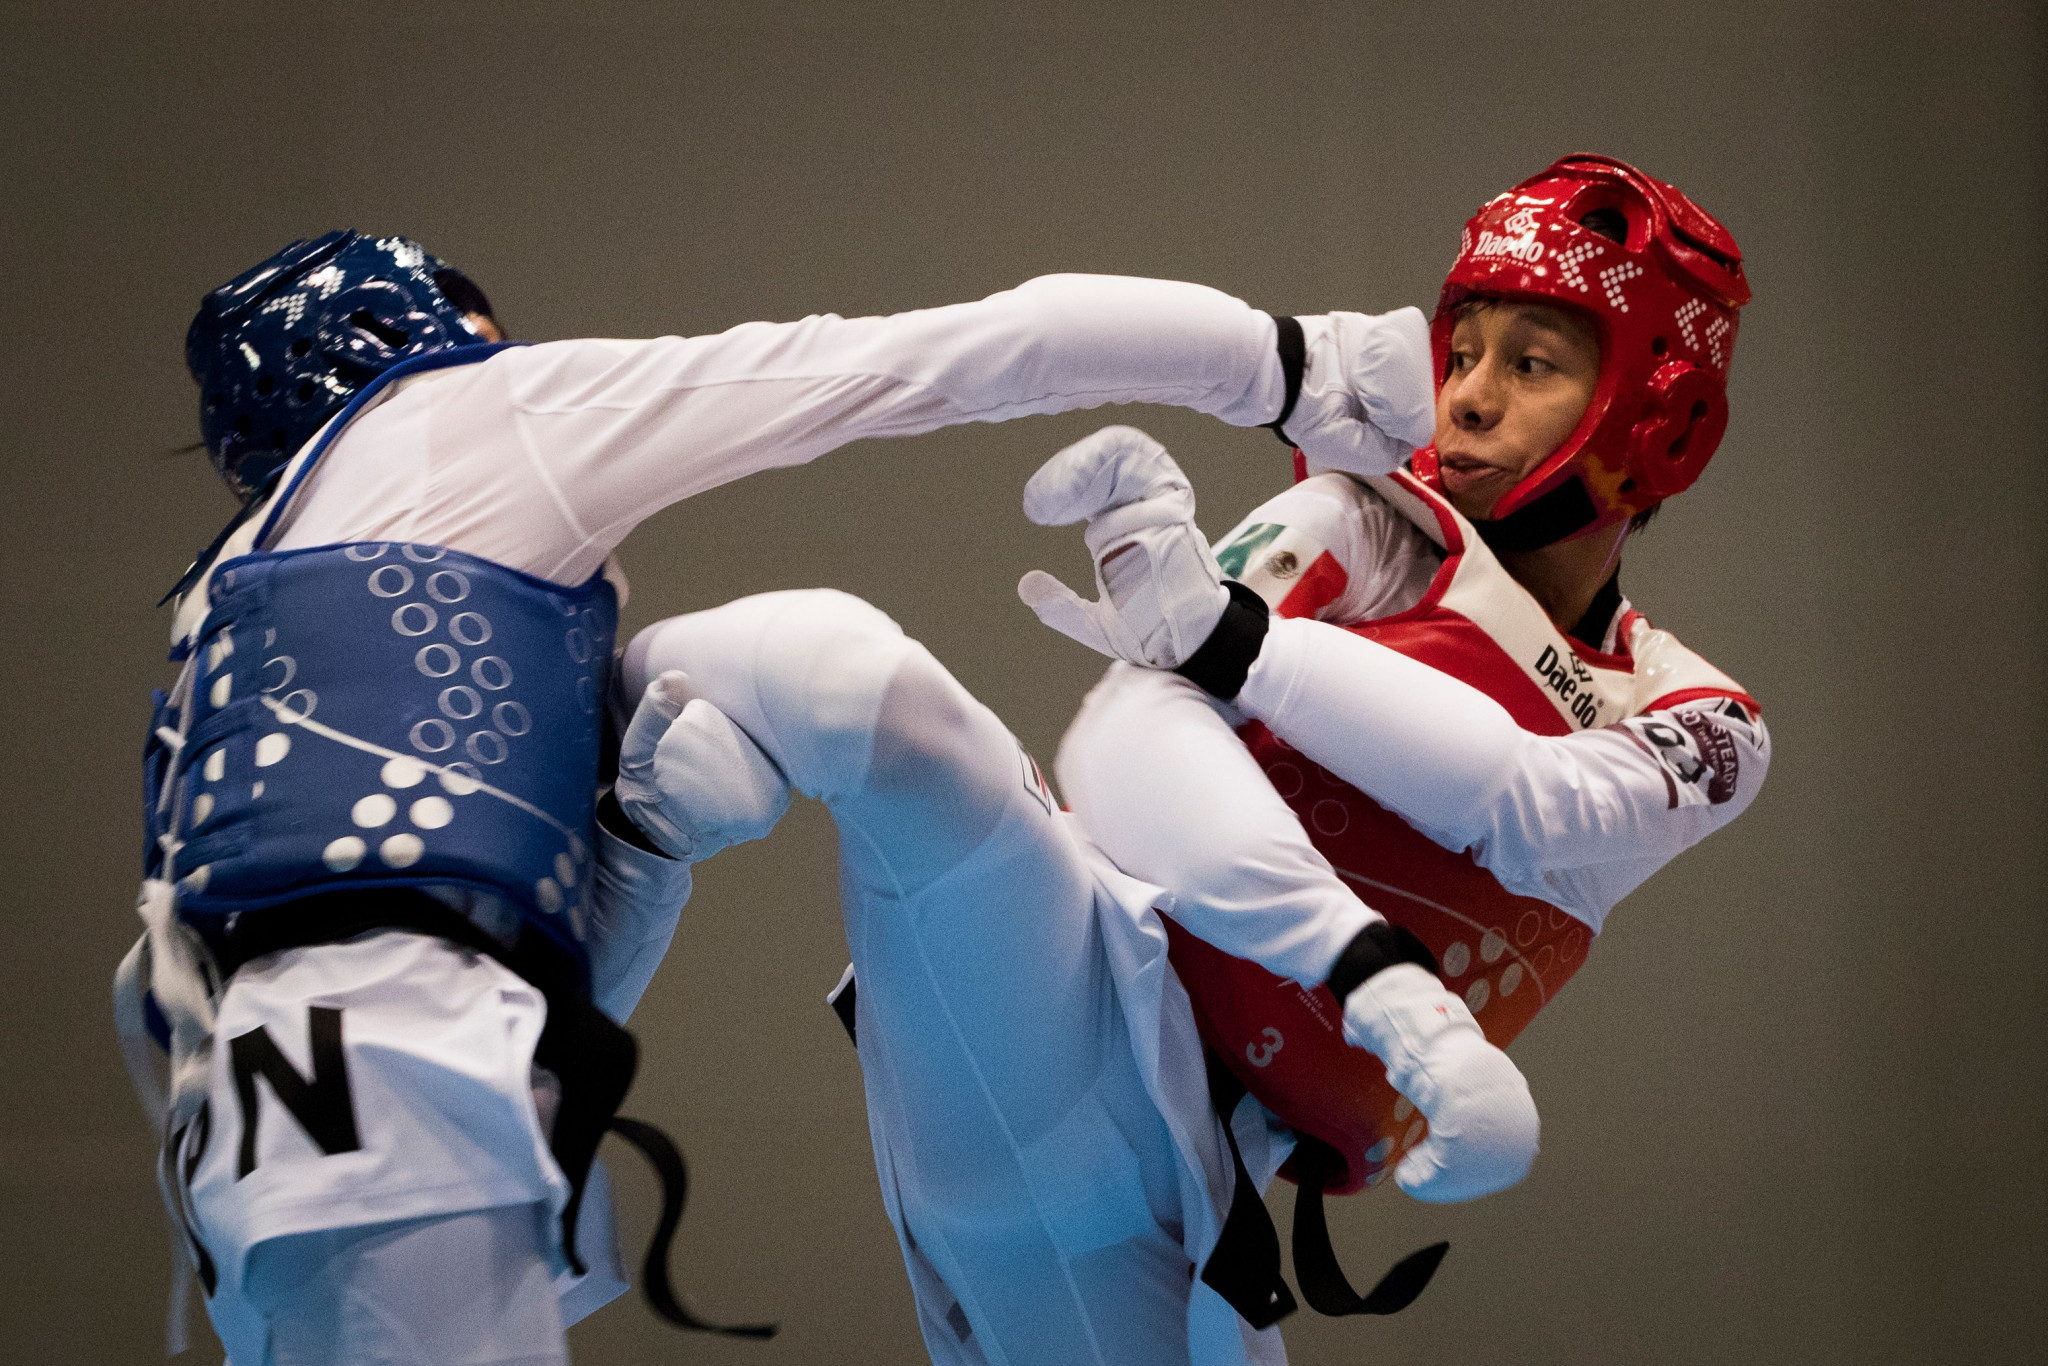 On the subject of athlete welfare, the World Taekwondo Council approved tighter safety protocols for major international events ©Getty Images